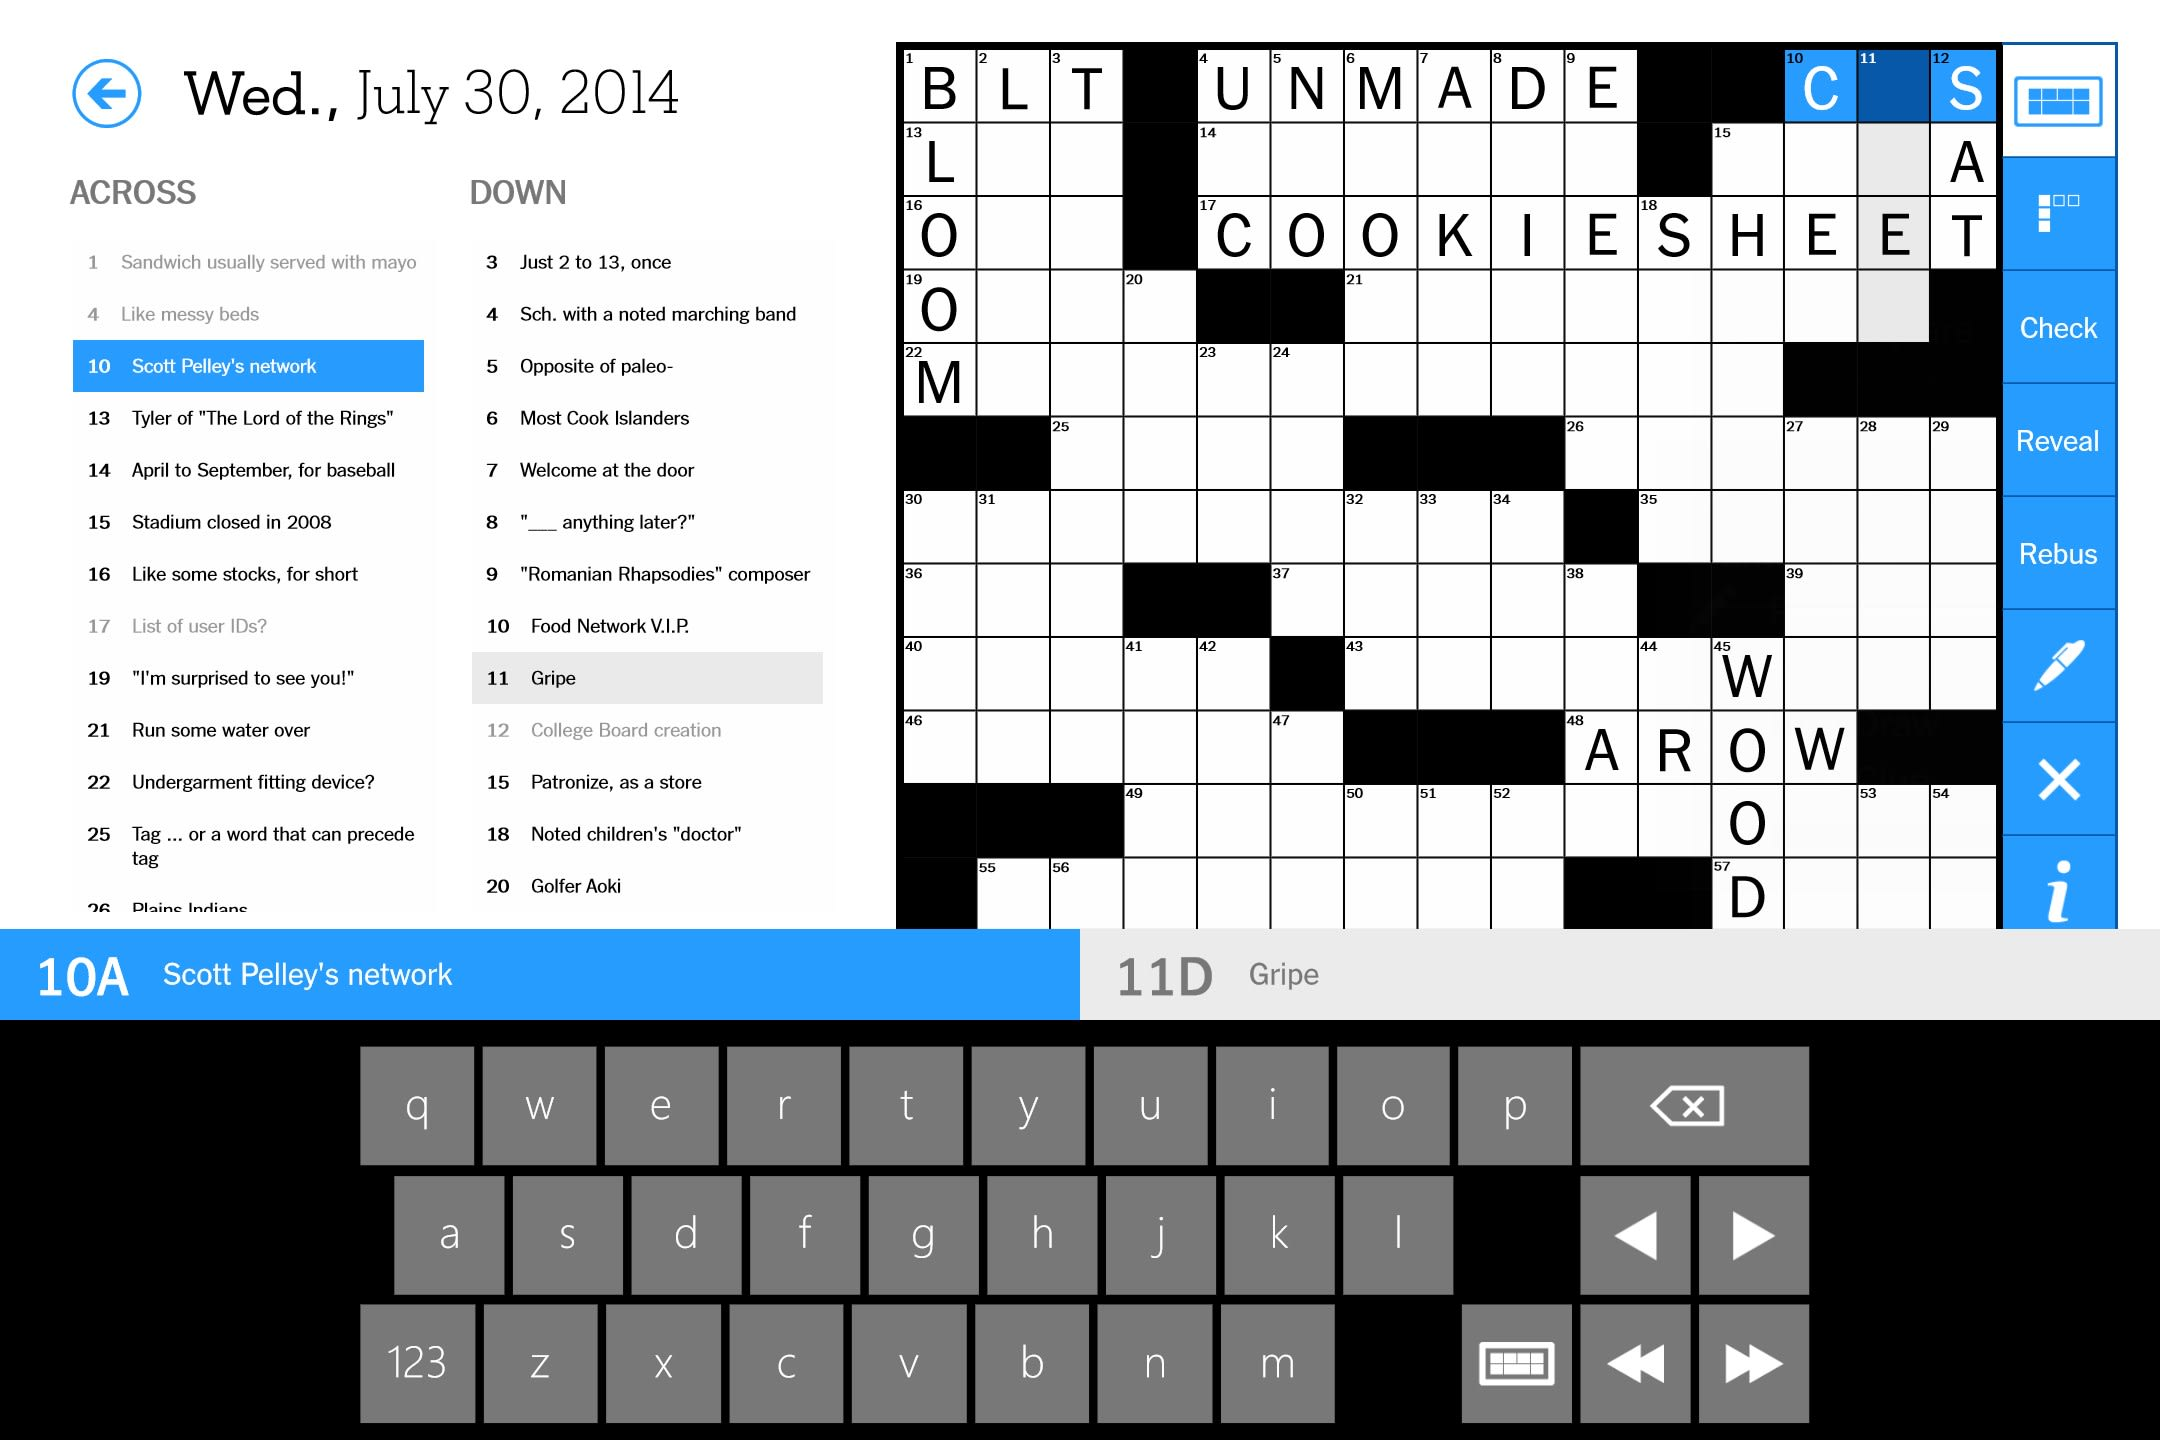 The New York Times Crossword